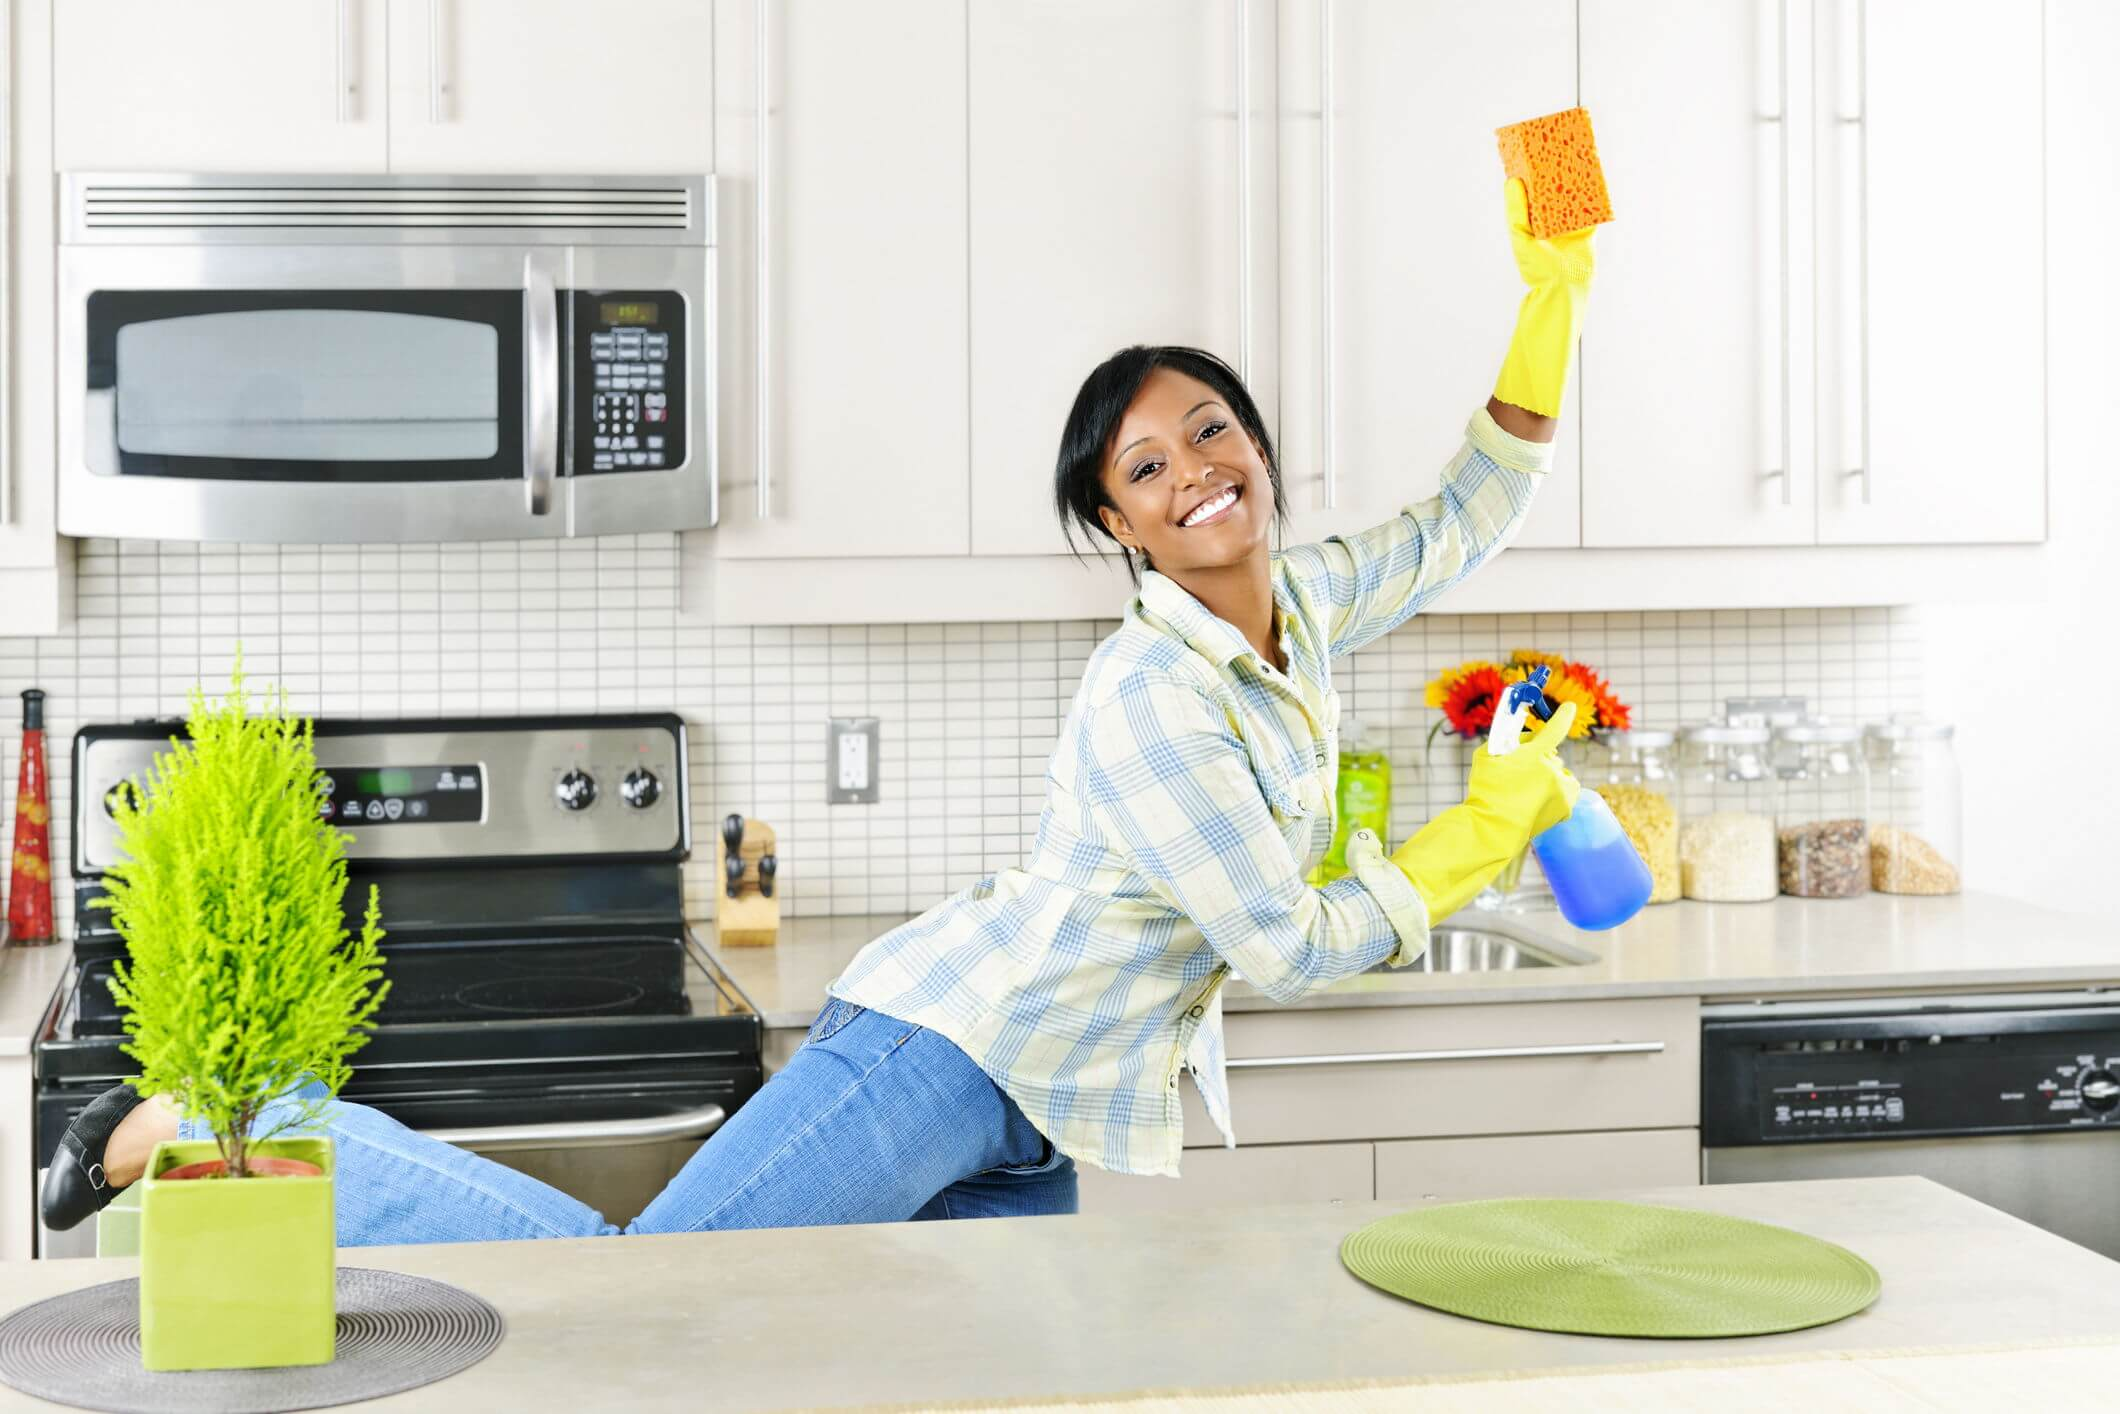 Kitchen Canopy & Filter Cleaning Services